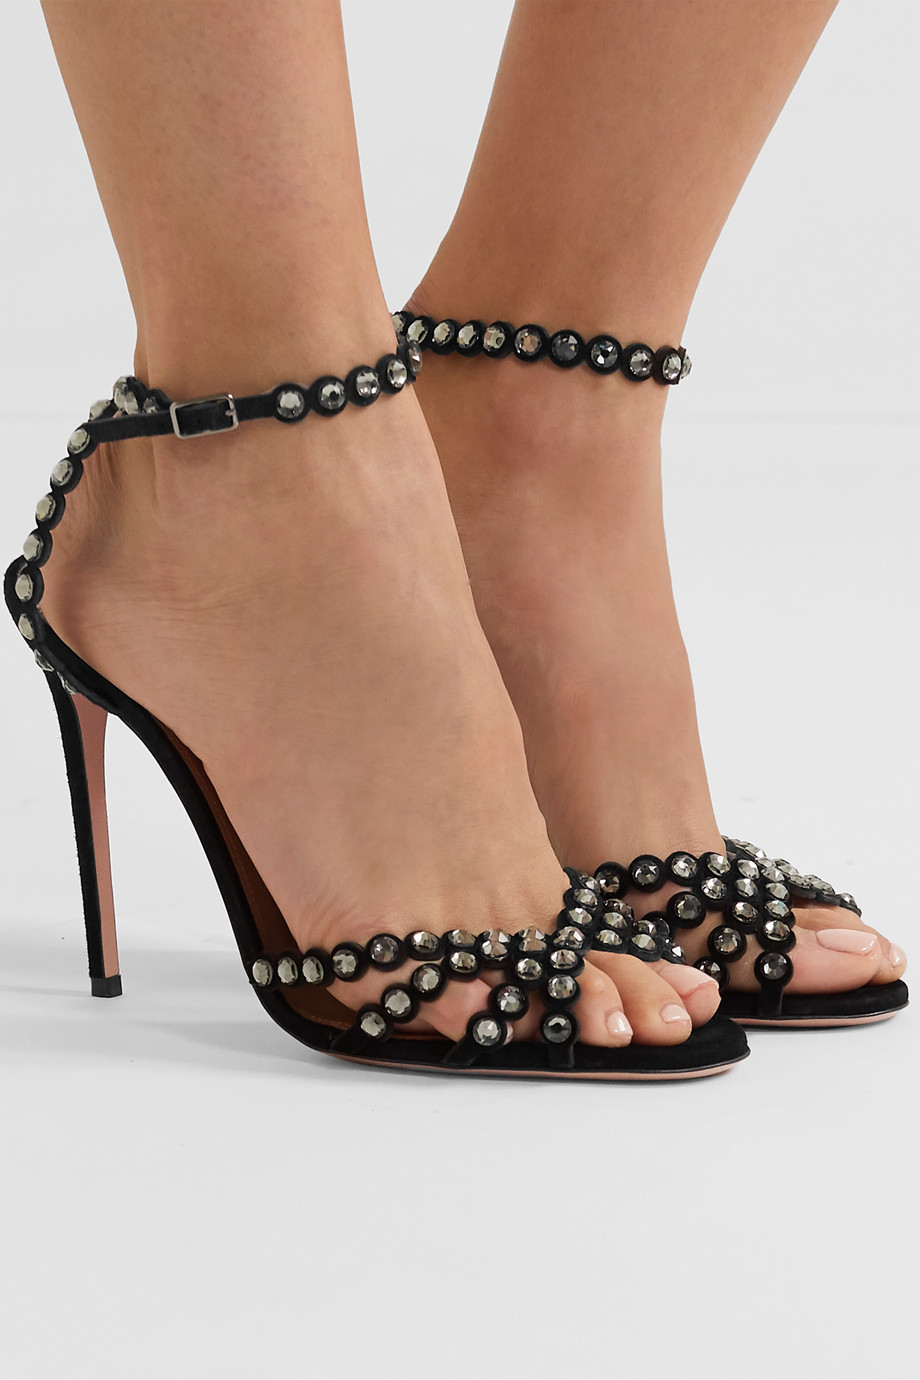 Aquazzura Tequila 105 crystal-embellished suede sandals